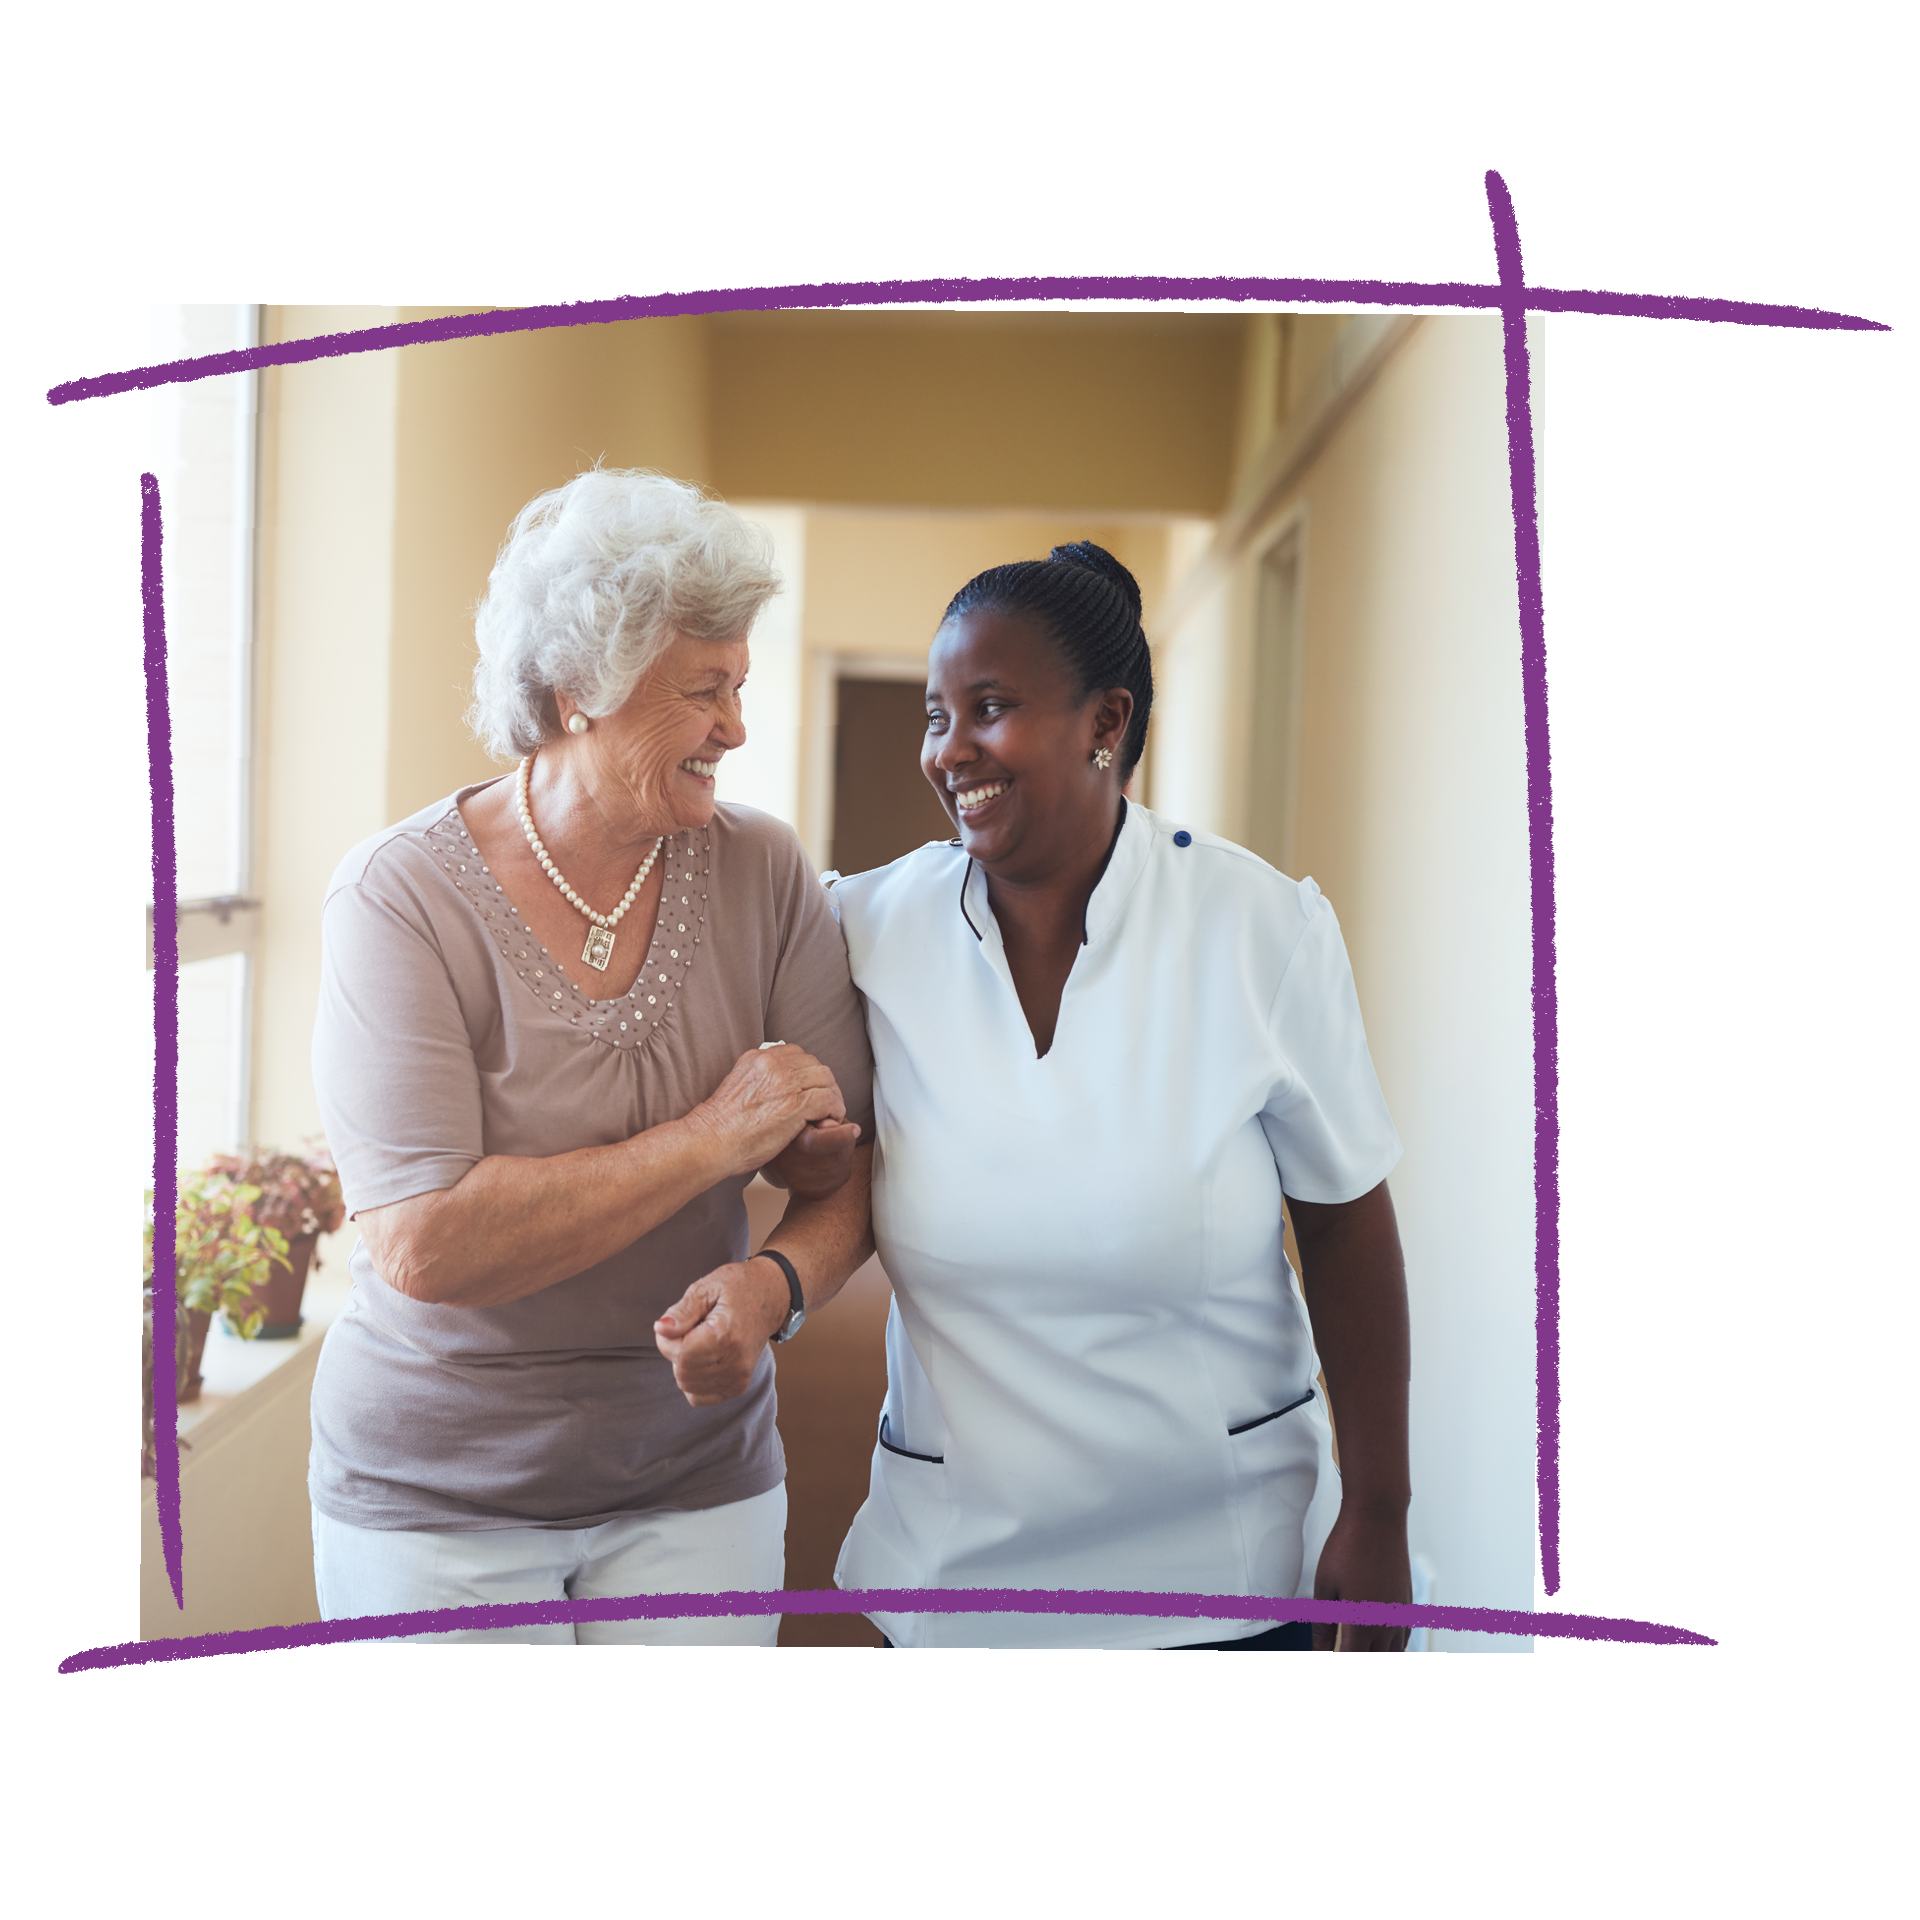 Photo of an older woman linking arms with a nurse wearing a white uniform. They are walking down a hallway together.